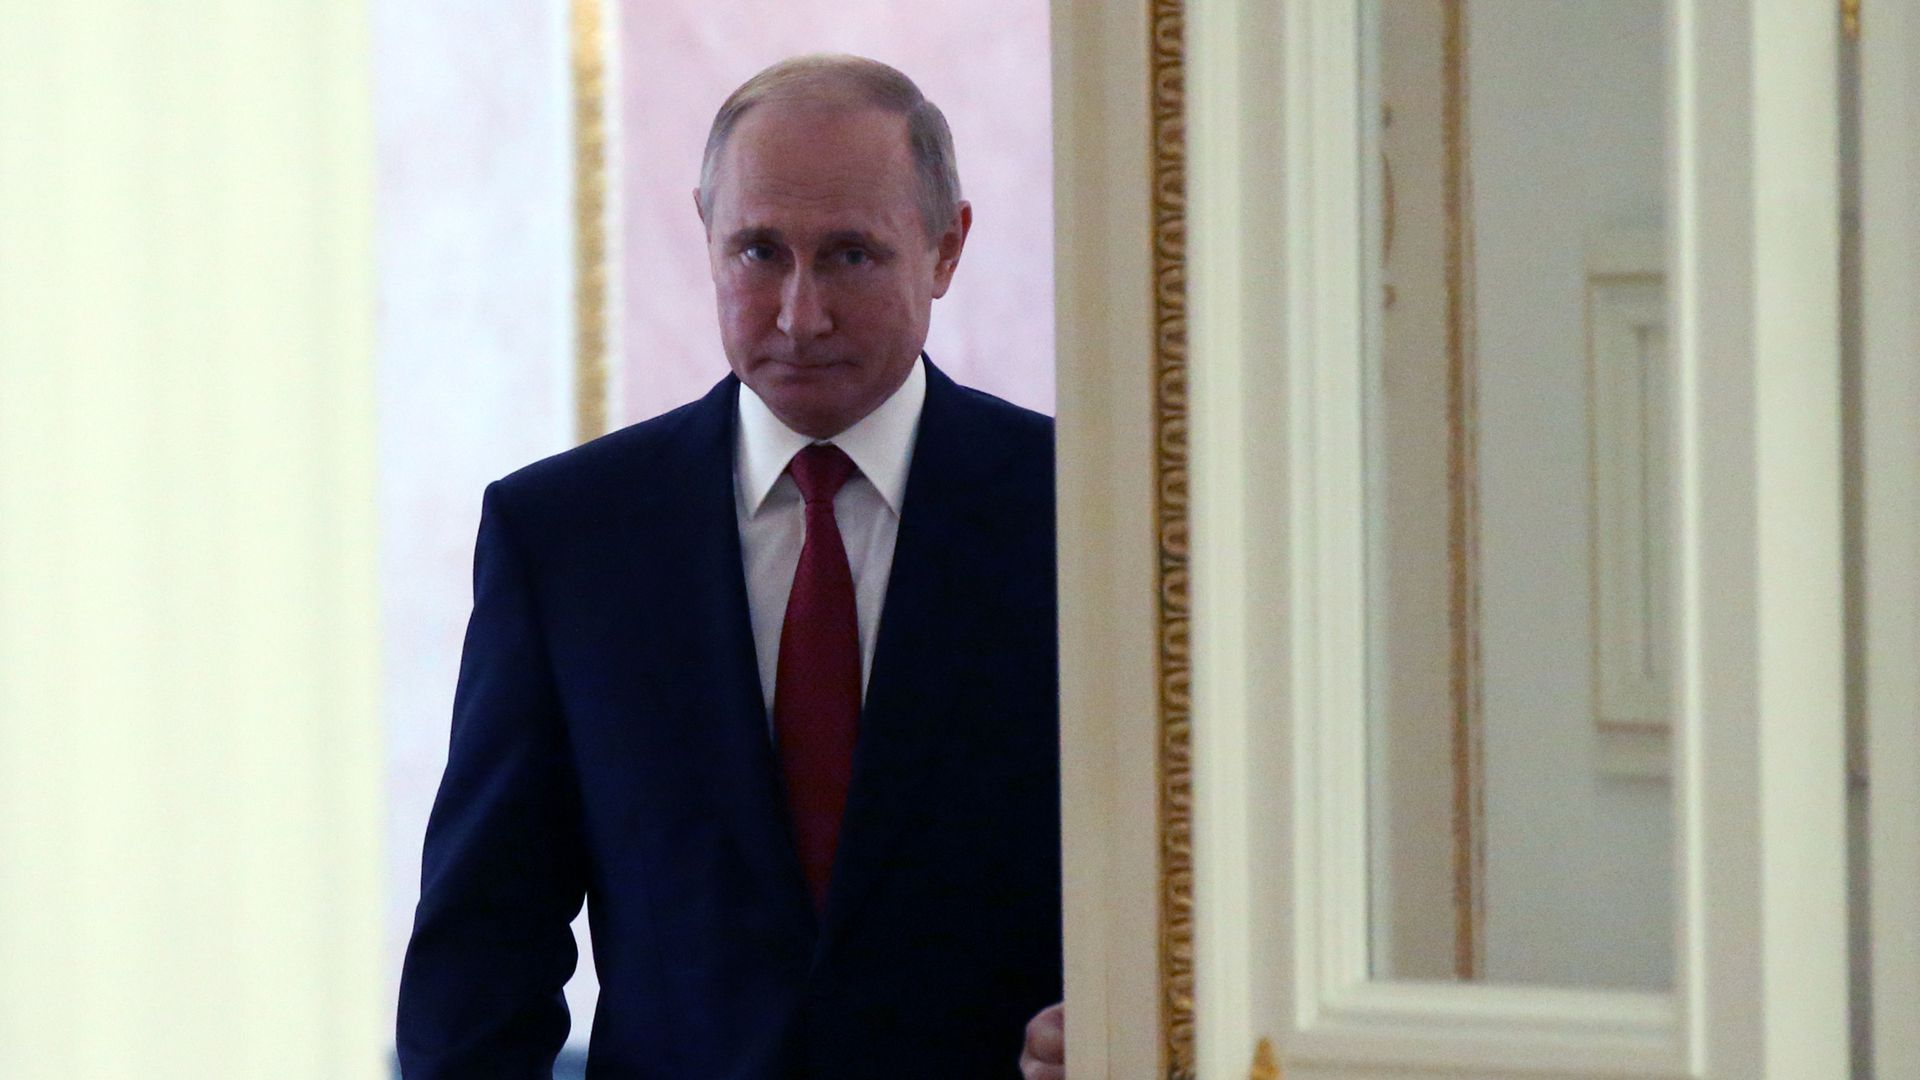 Vladimir Putin stands near a door and looks meek.